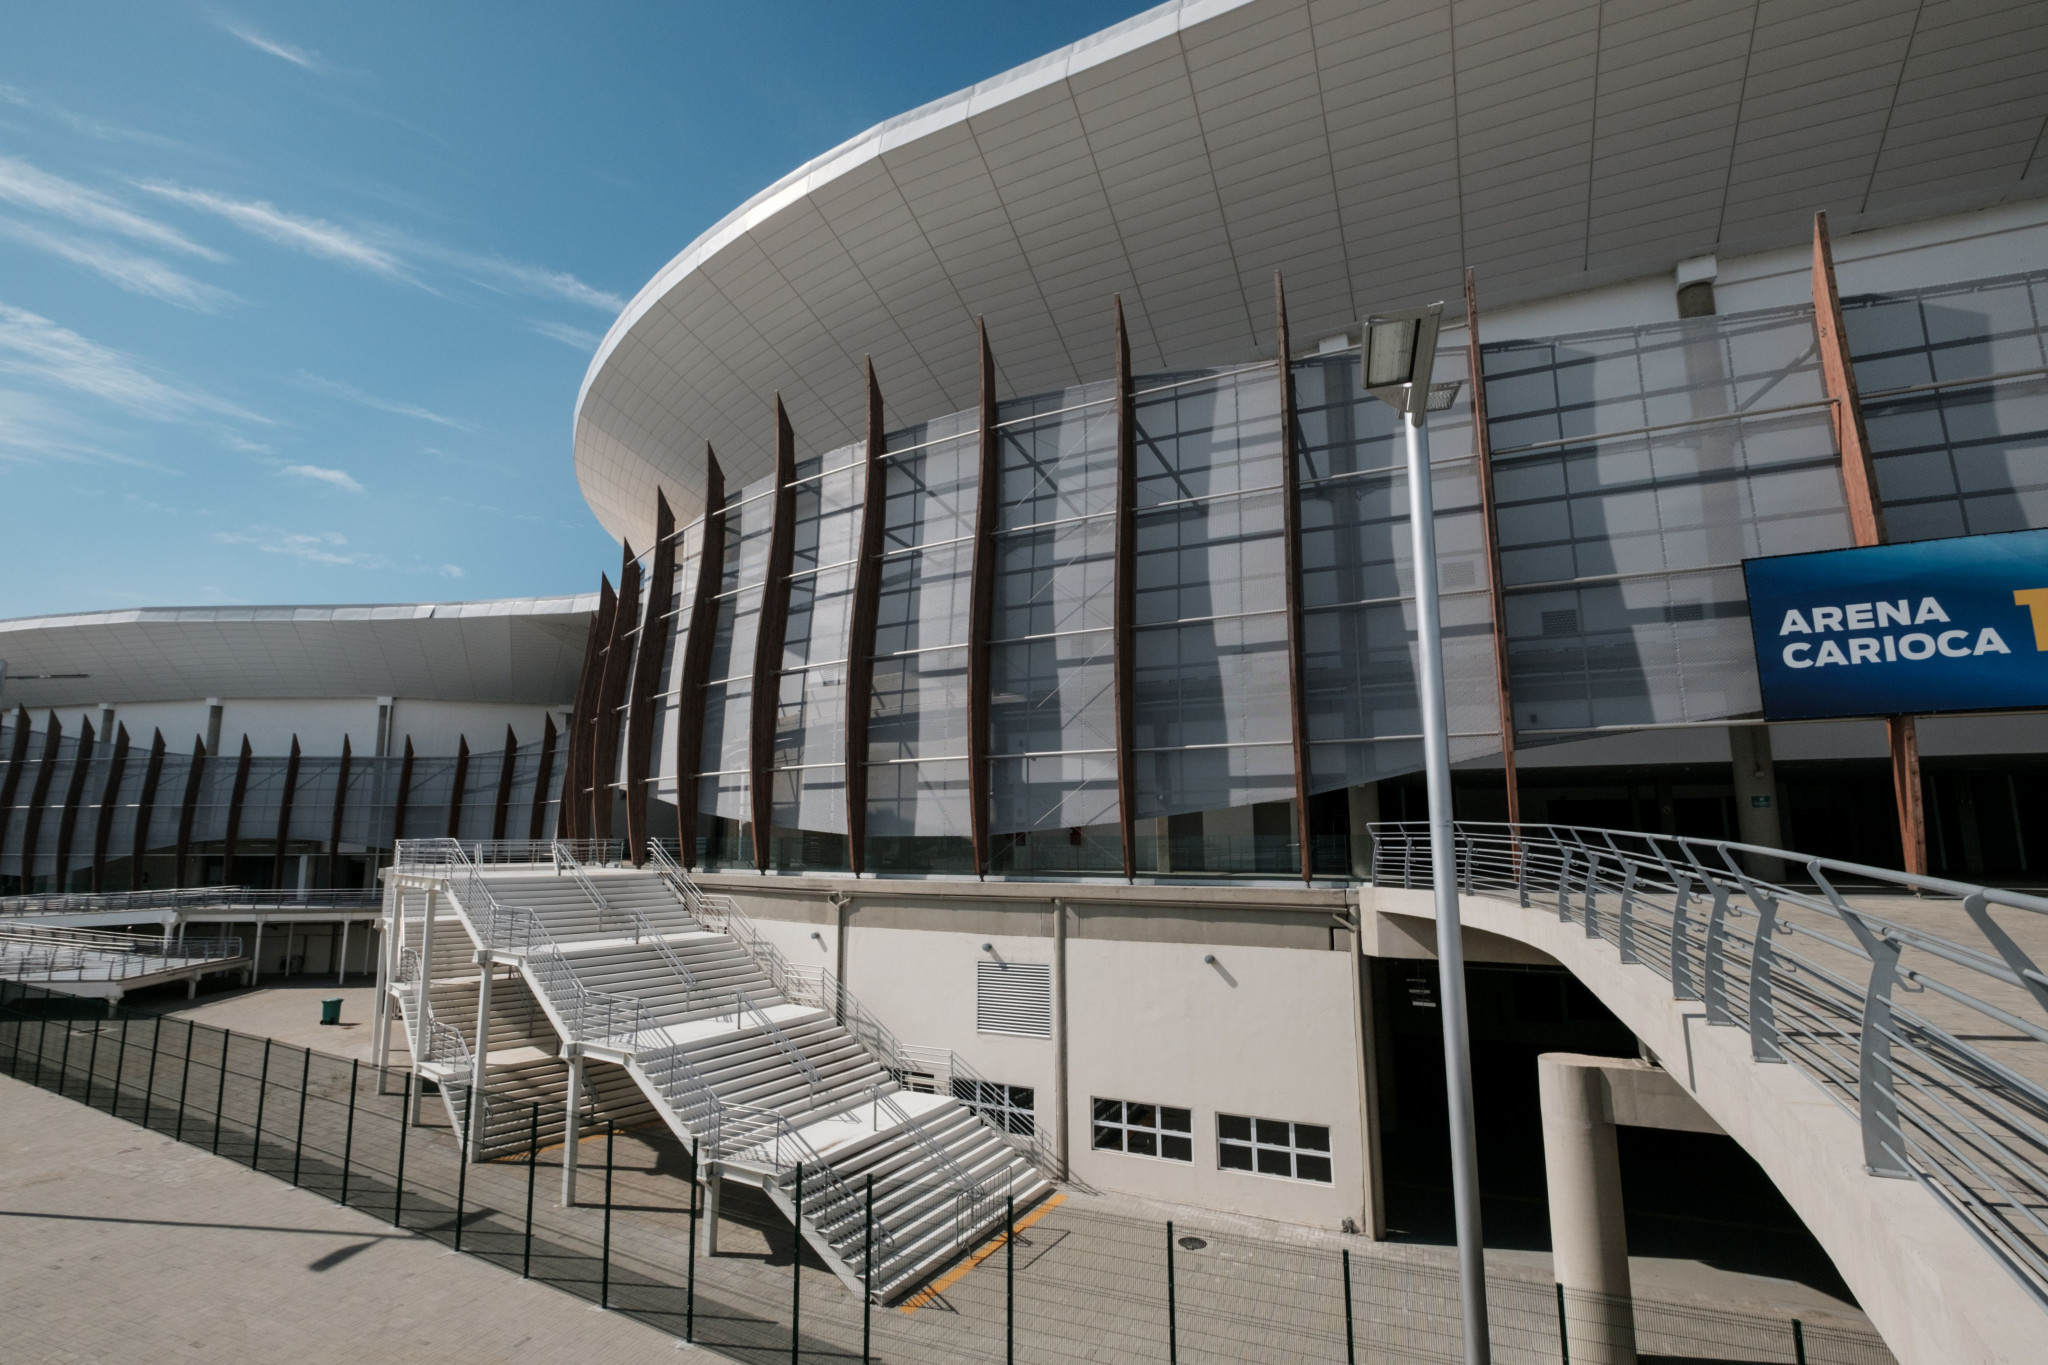 Competition will take place at Carioca Arena 1 in Rio de Janeiro ©Getty Images